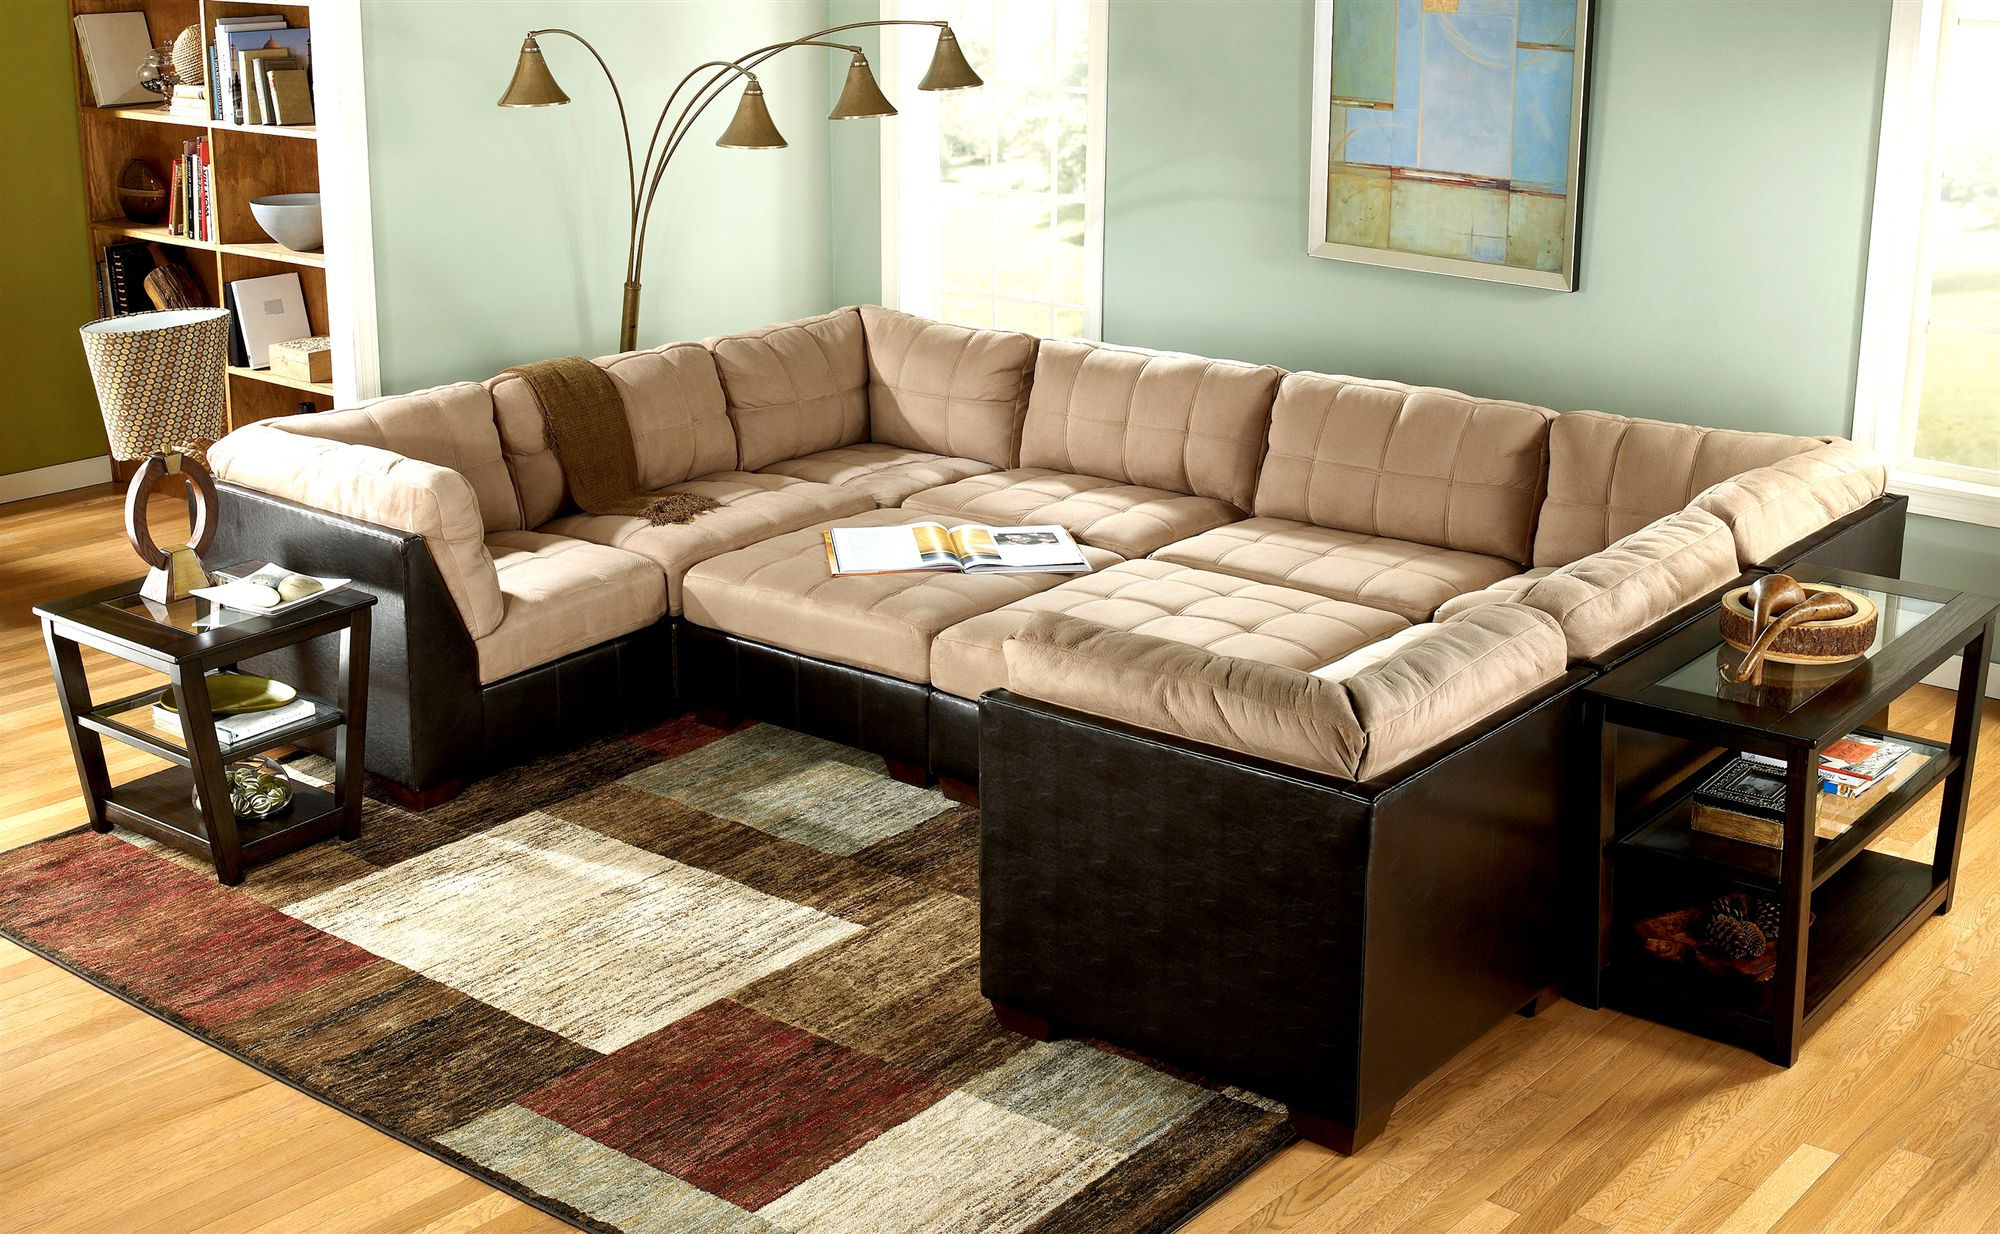 Living room ideas with sectionals sofa for small living for Sectional sofa living room layout